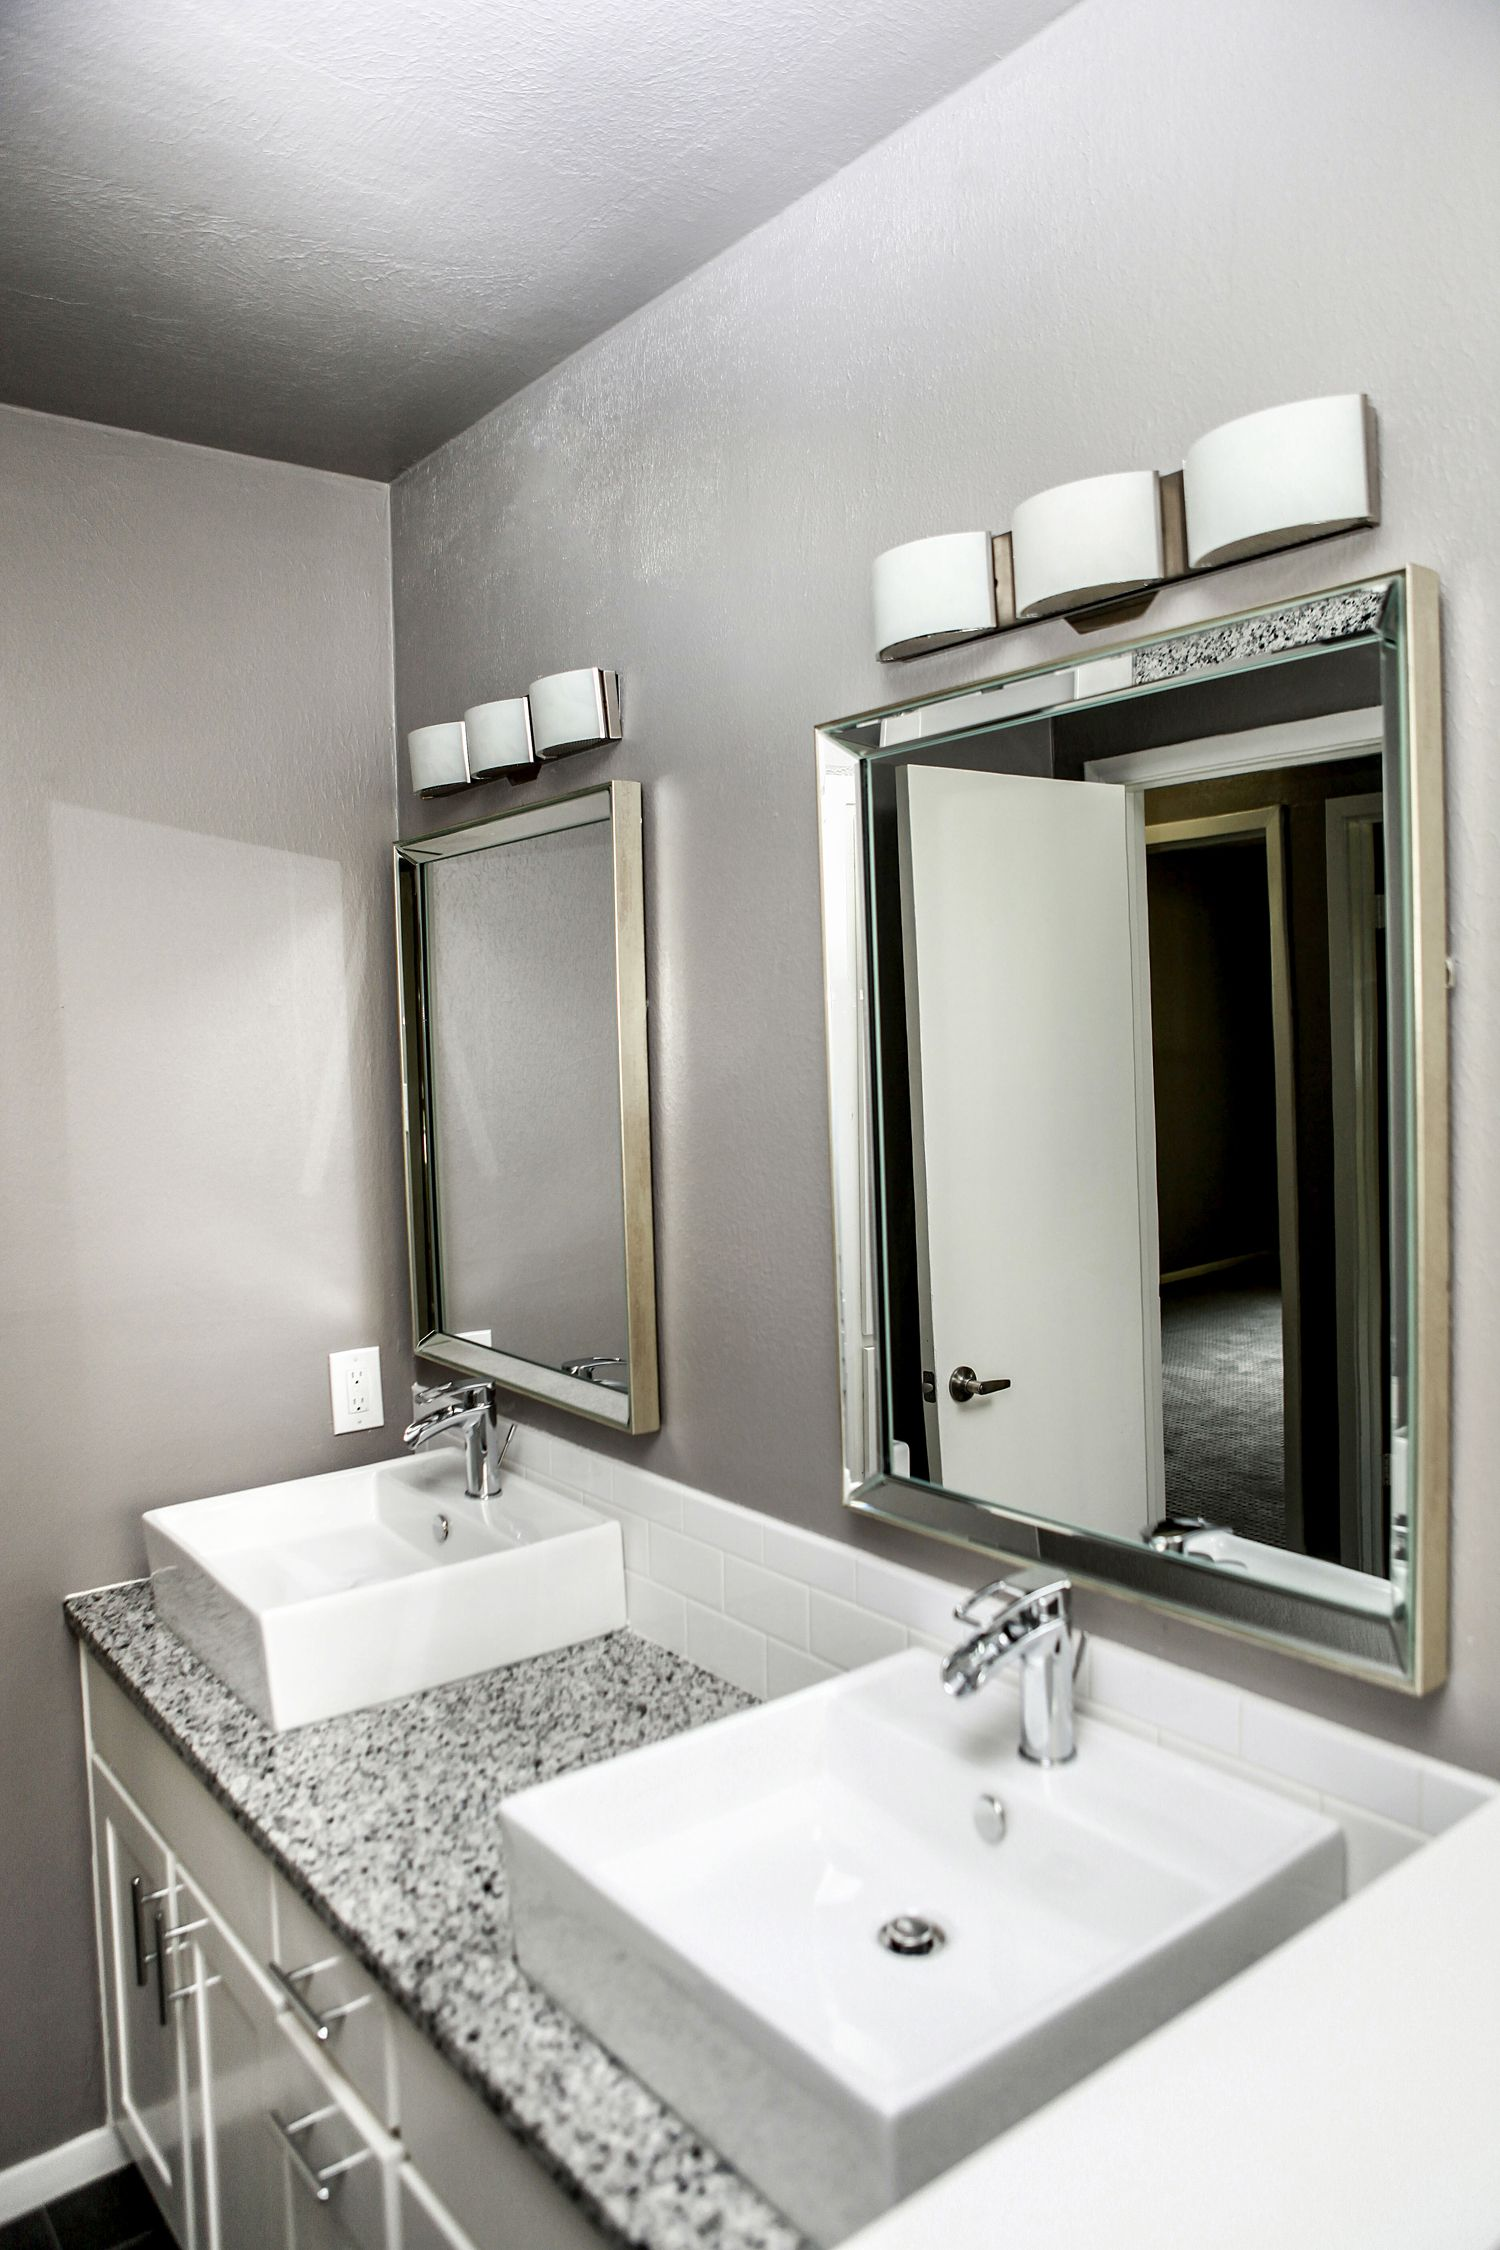 Double Sink Bathroom Vessel Sinks Gray Granite Counter Tops Walls White Custom Cabinets Remodel Modern Lighting